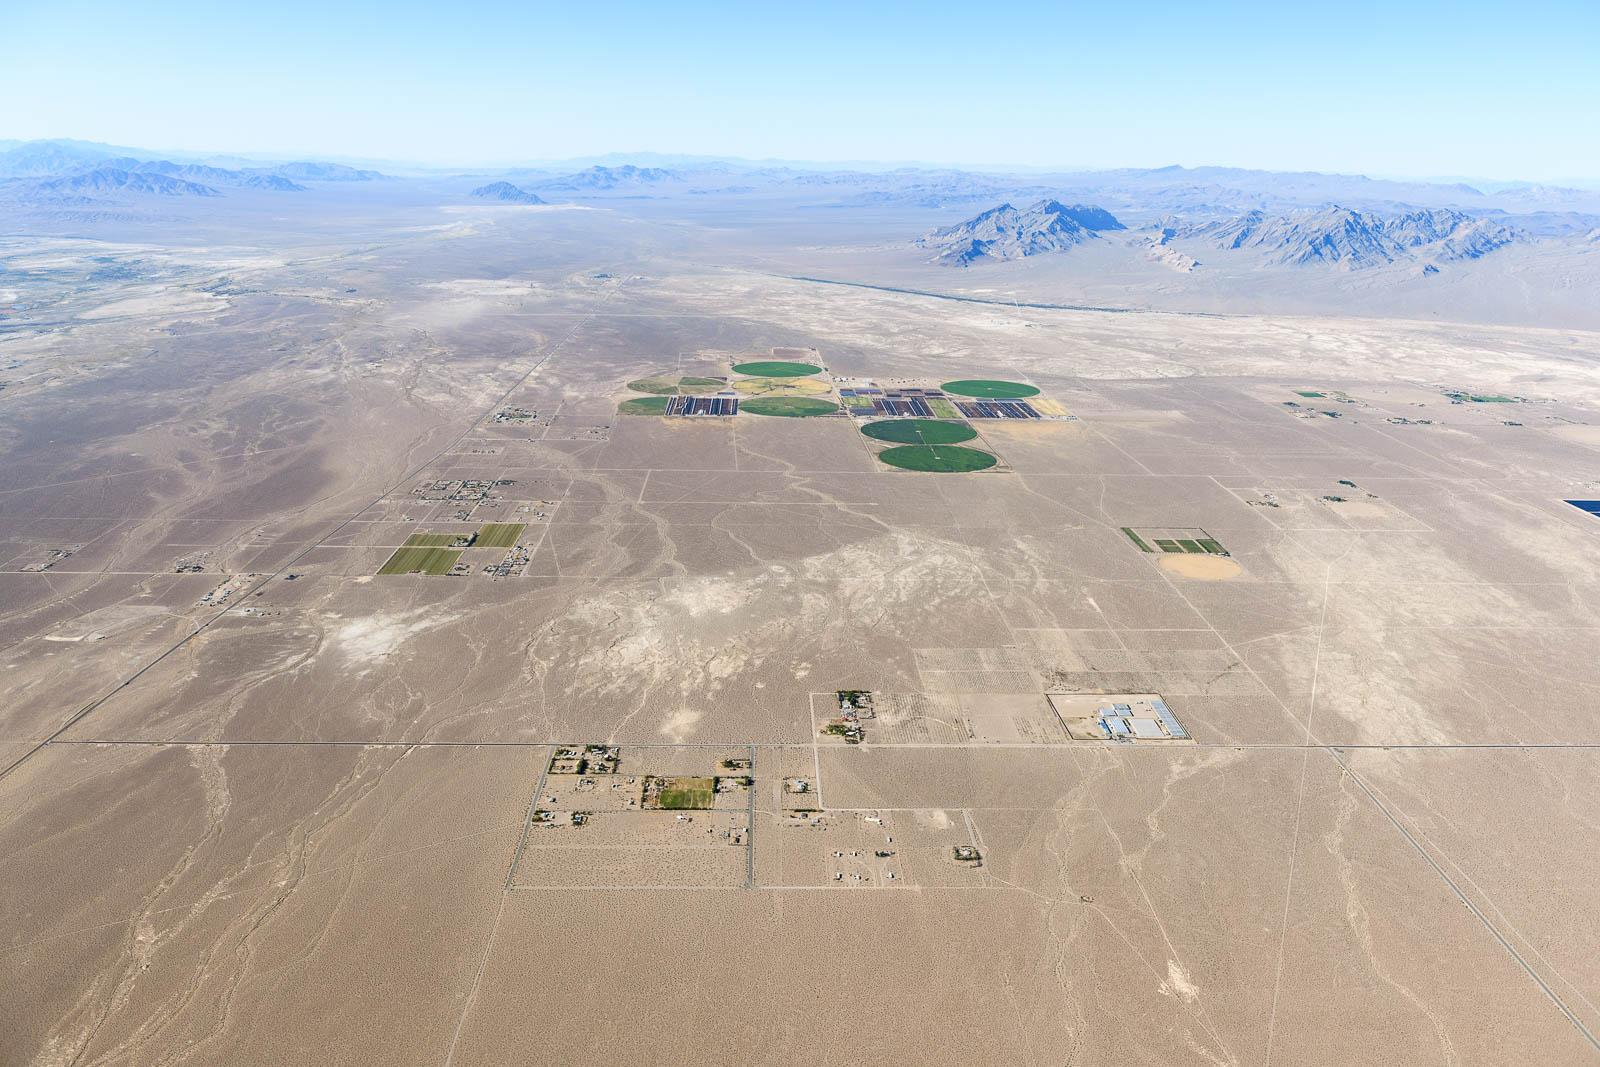 Oasis Farms at California / Nevada Border